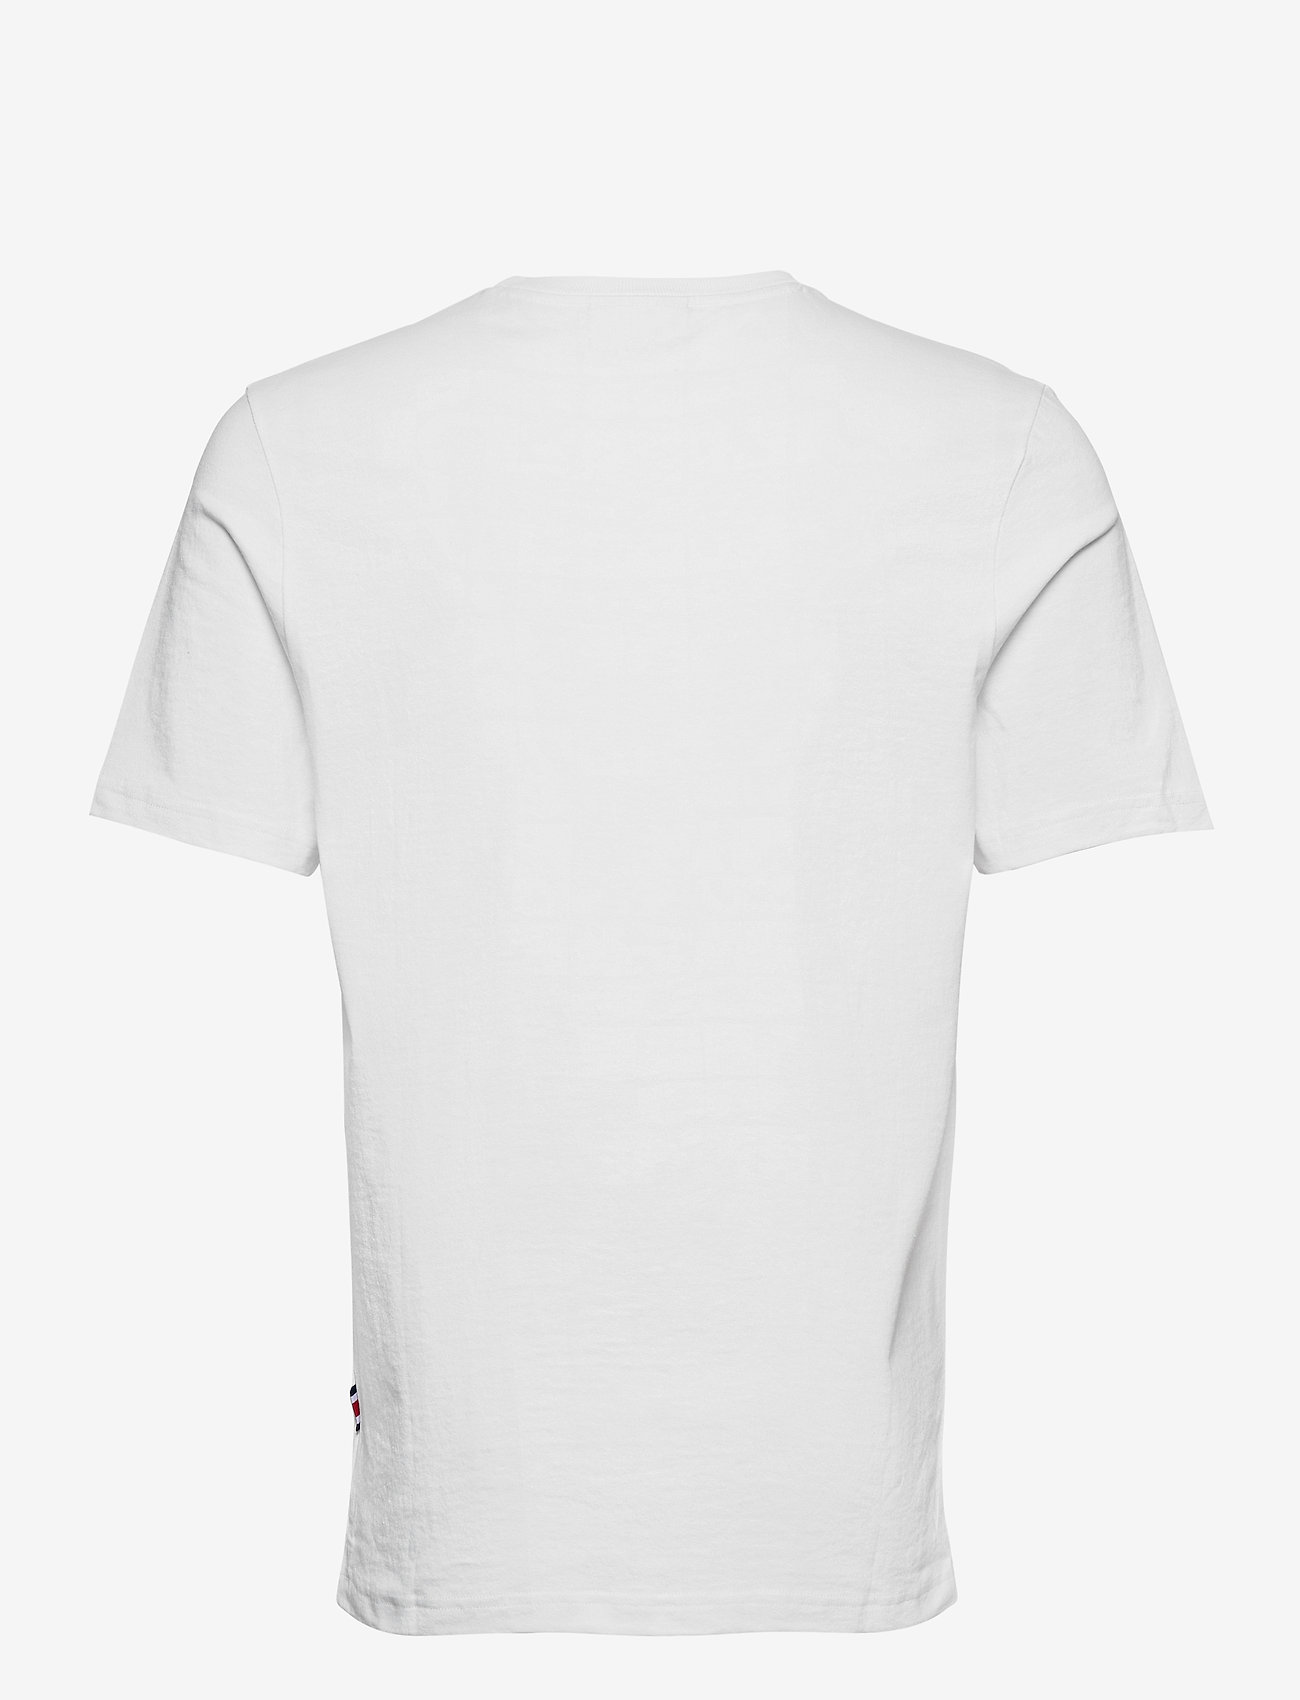 Tommy Hilfiger - LH CLASSIC LOGO TEE - short-sleeved t-shirts - white - 1